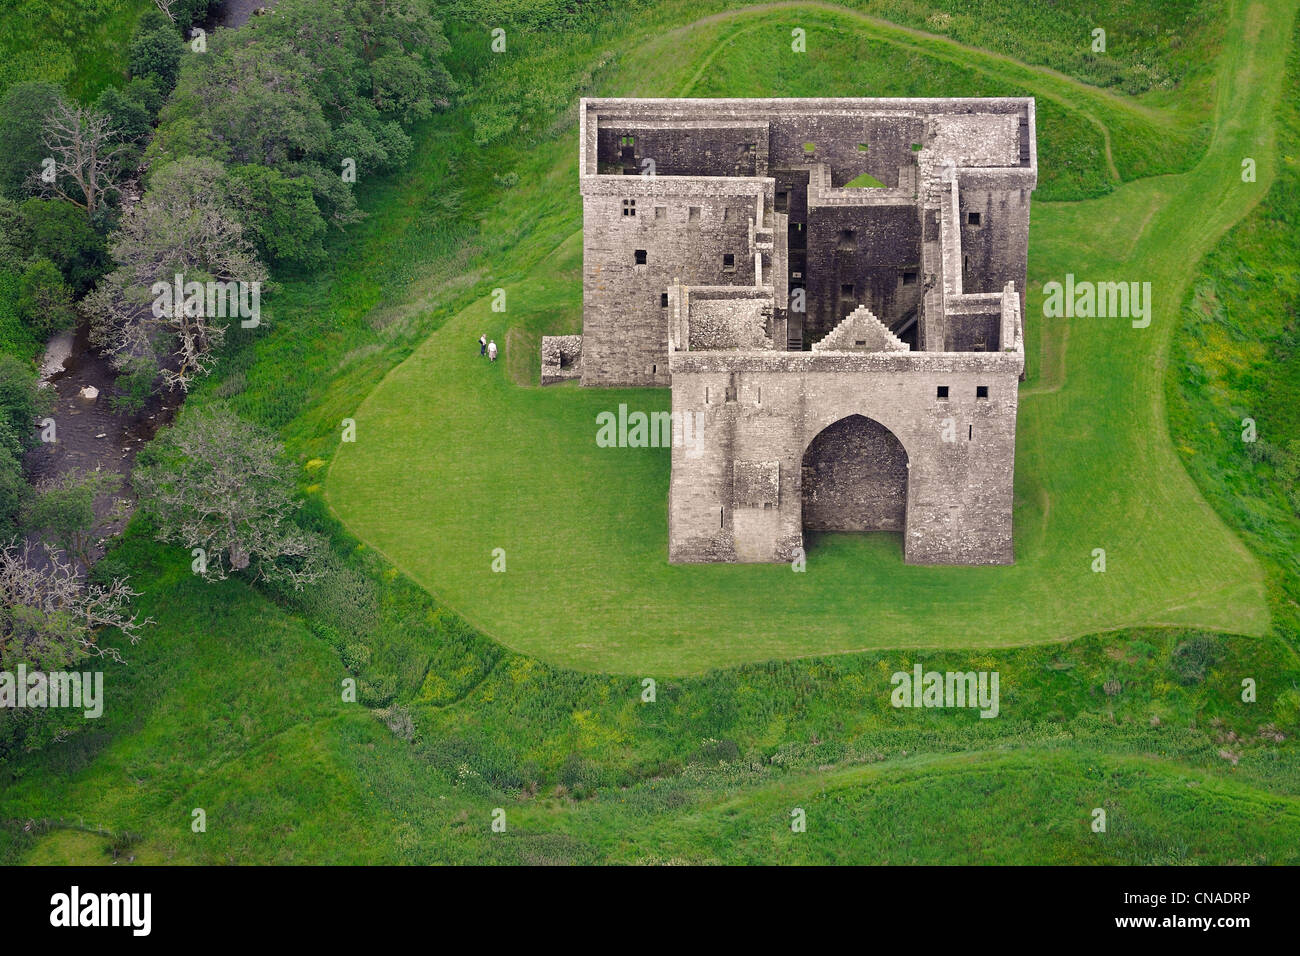 United Kingdom, Scotland, Borders, Liddesdale, Newcastleton, Hermitage Castle built in the 14th and 15th centuries - Stock Image